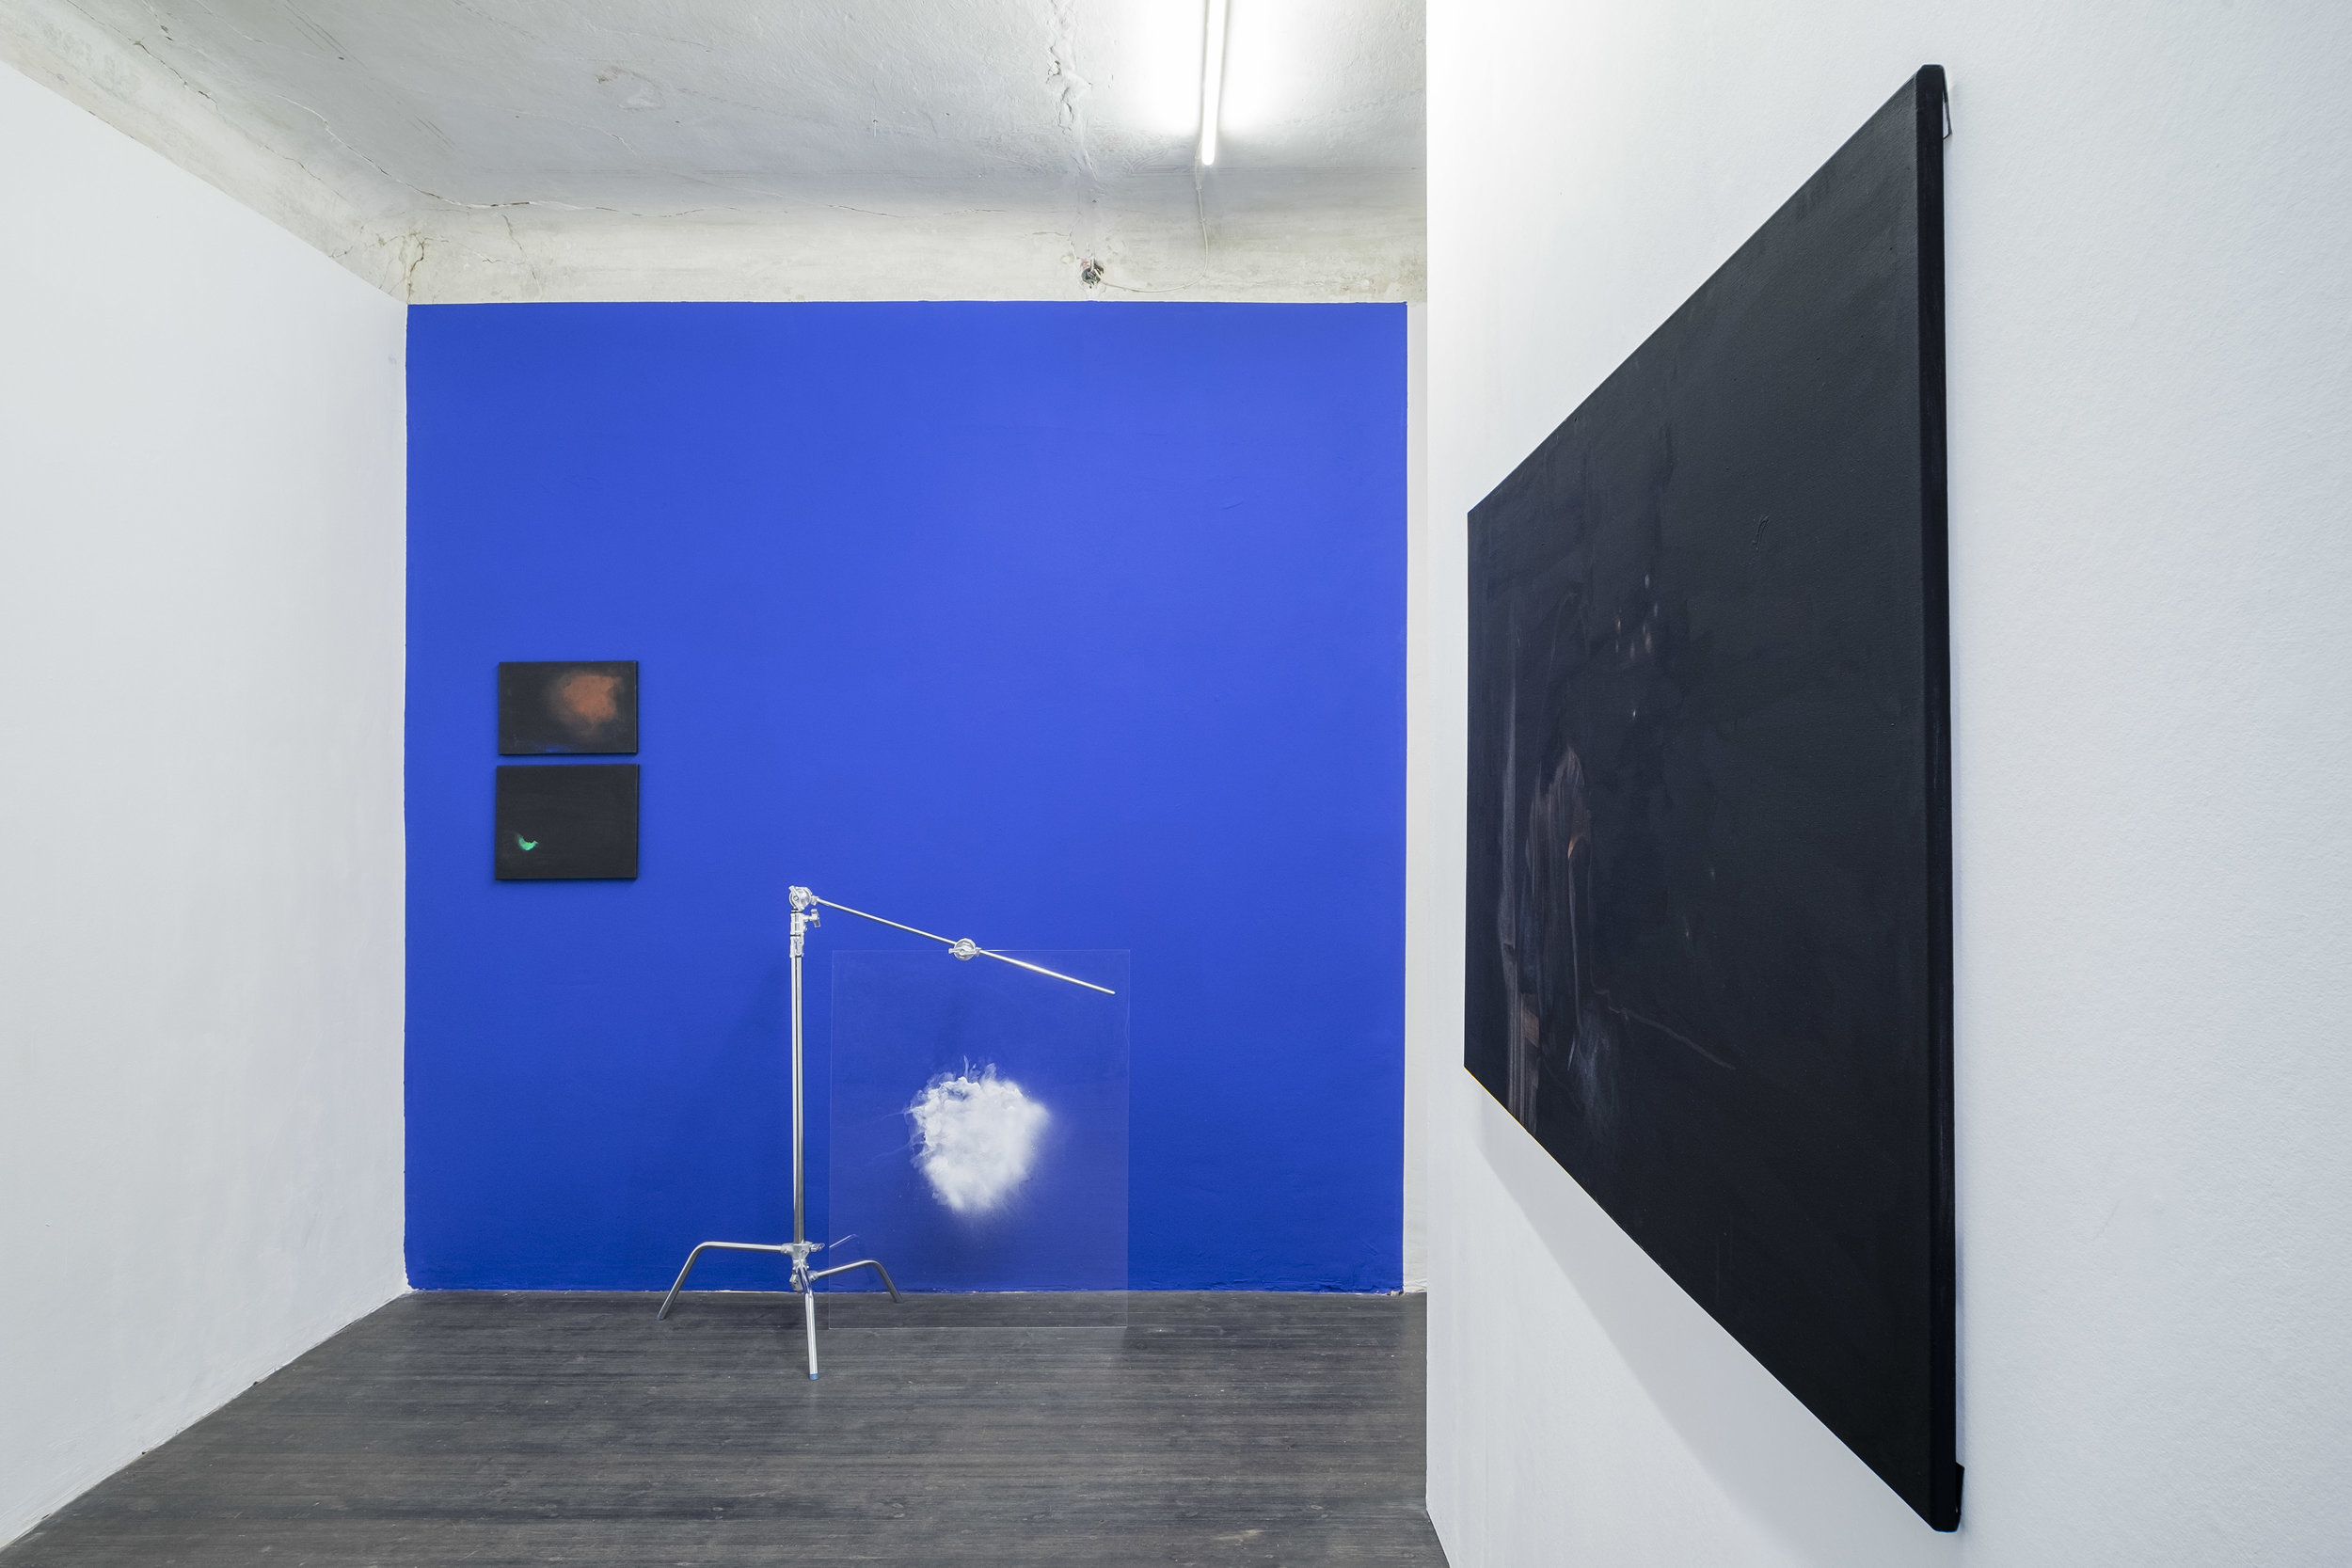 Installation view, KM, Berlin, 2016/2017